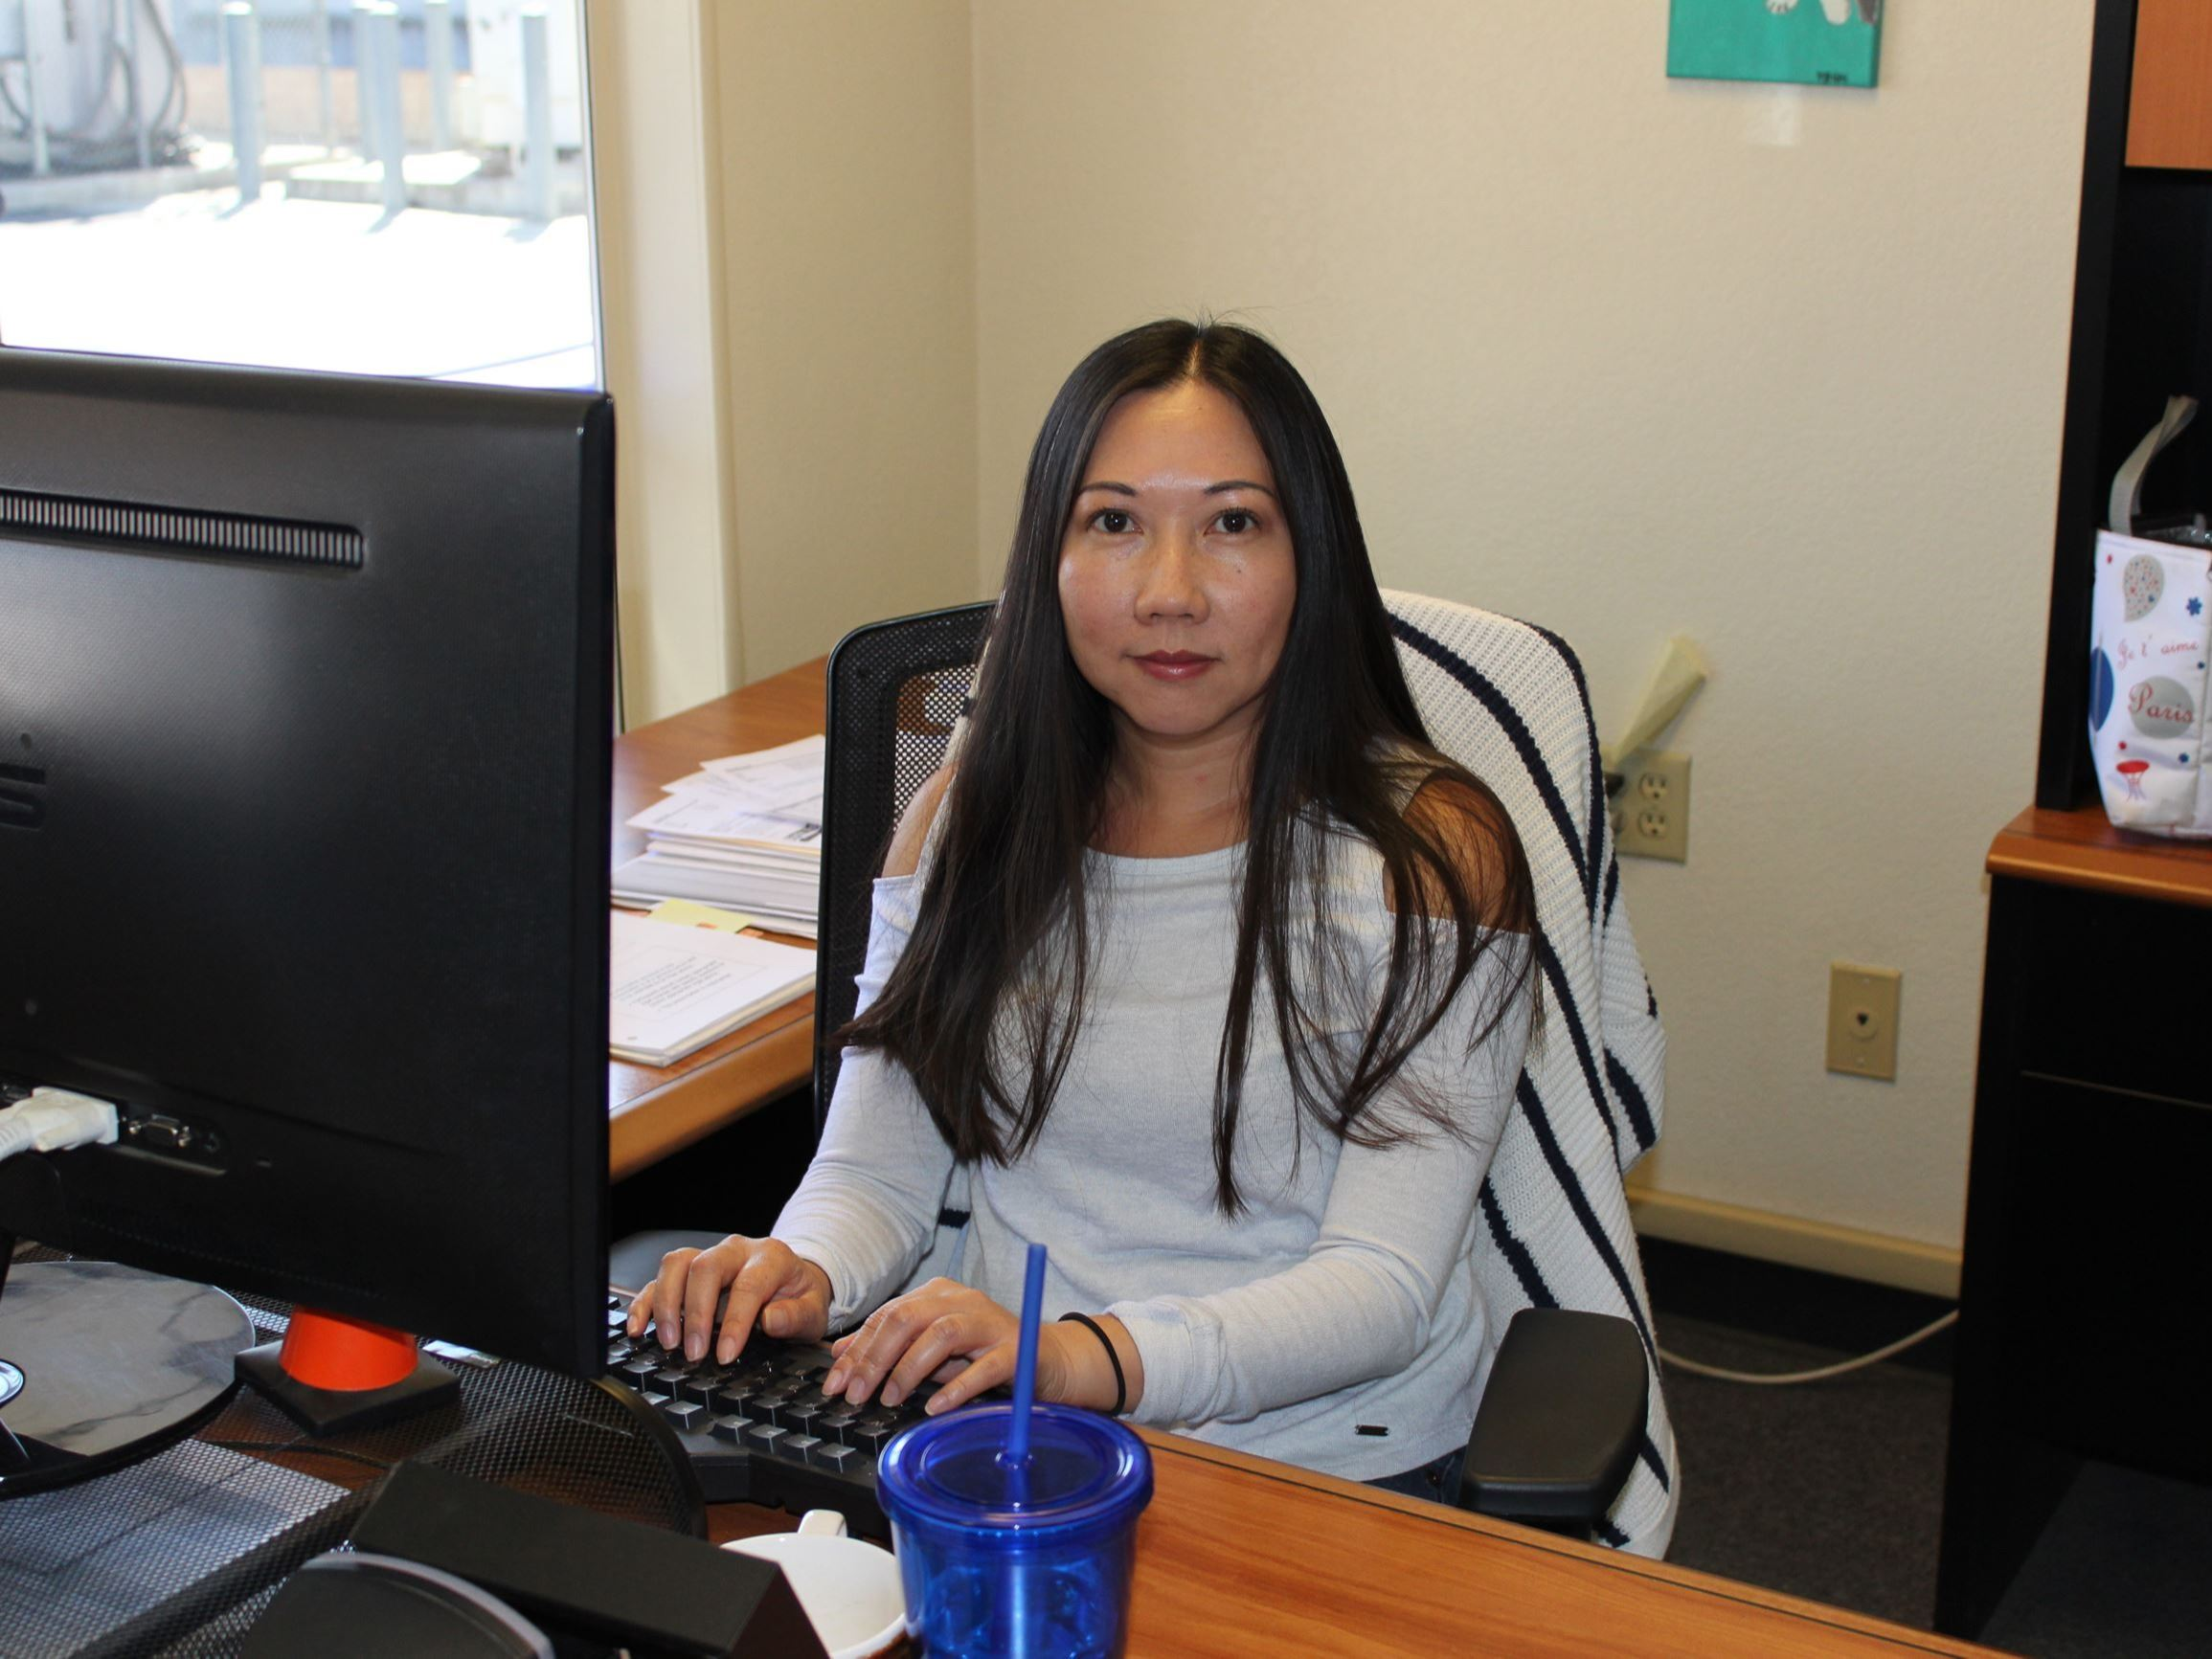 Female staff member sits behind at desk behind a computer.